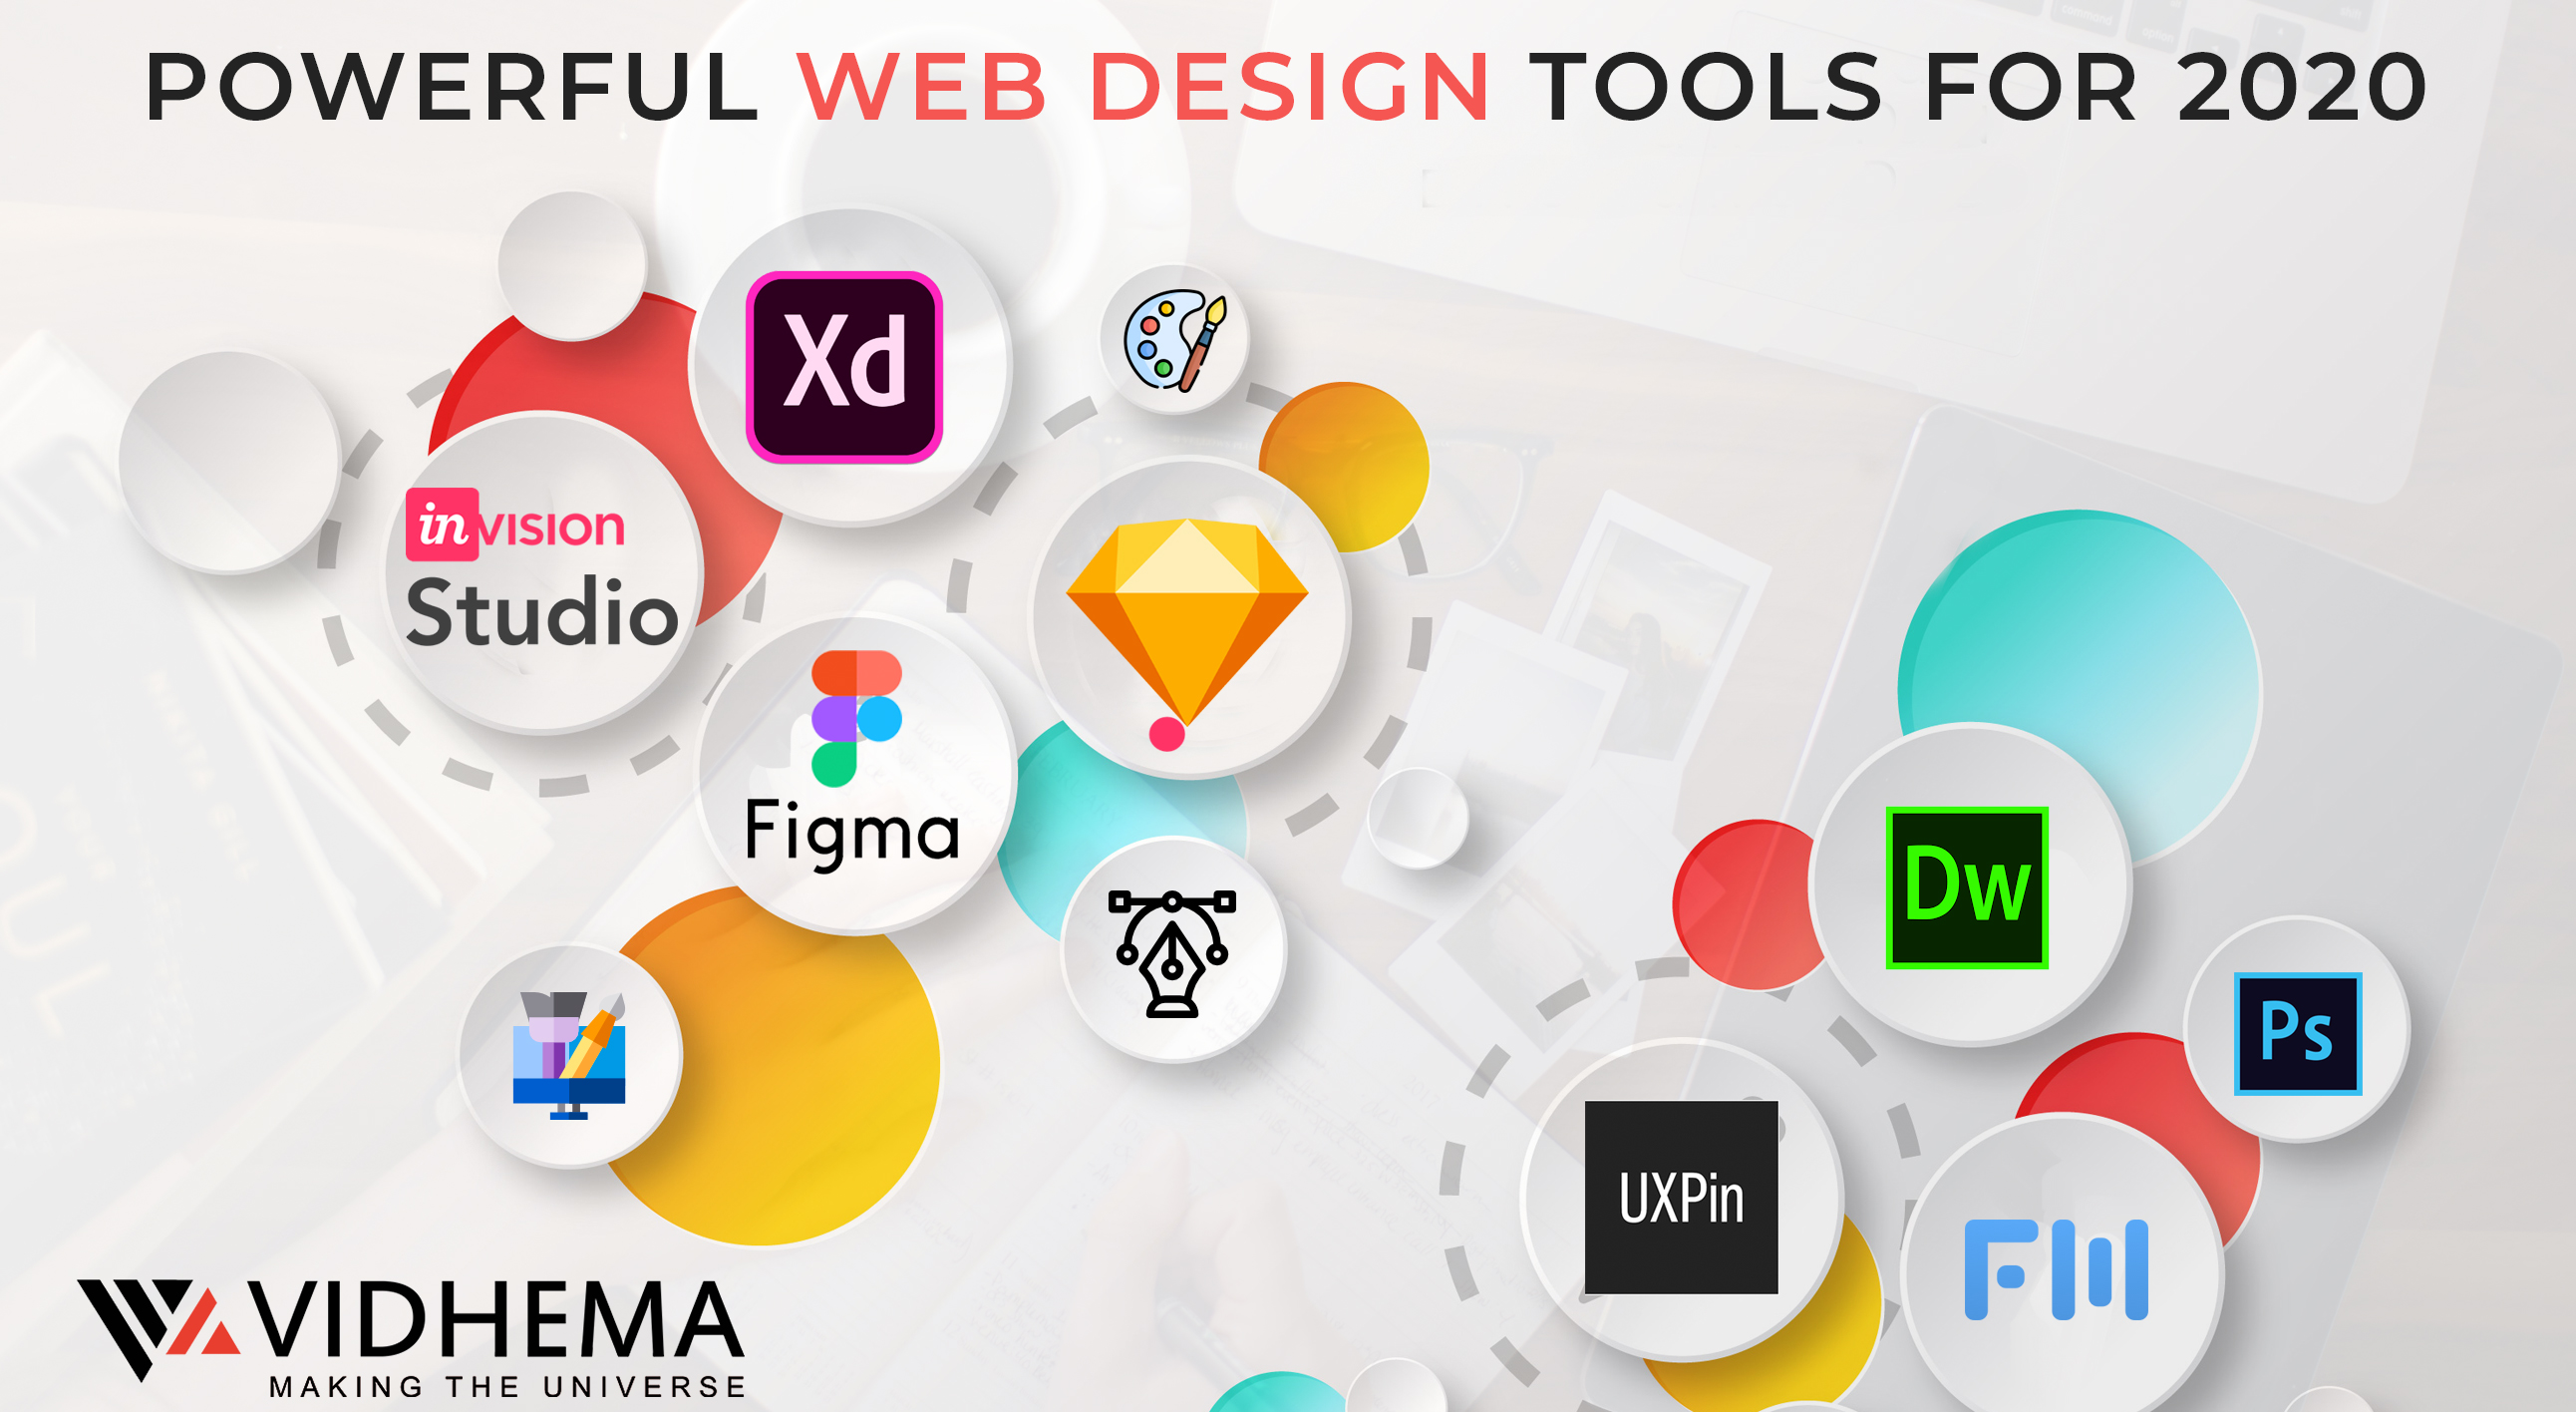 POWERFUL WEB DESIGN TOOLS FOR 2020